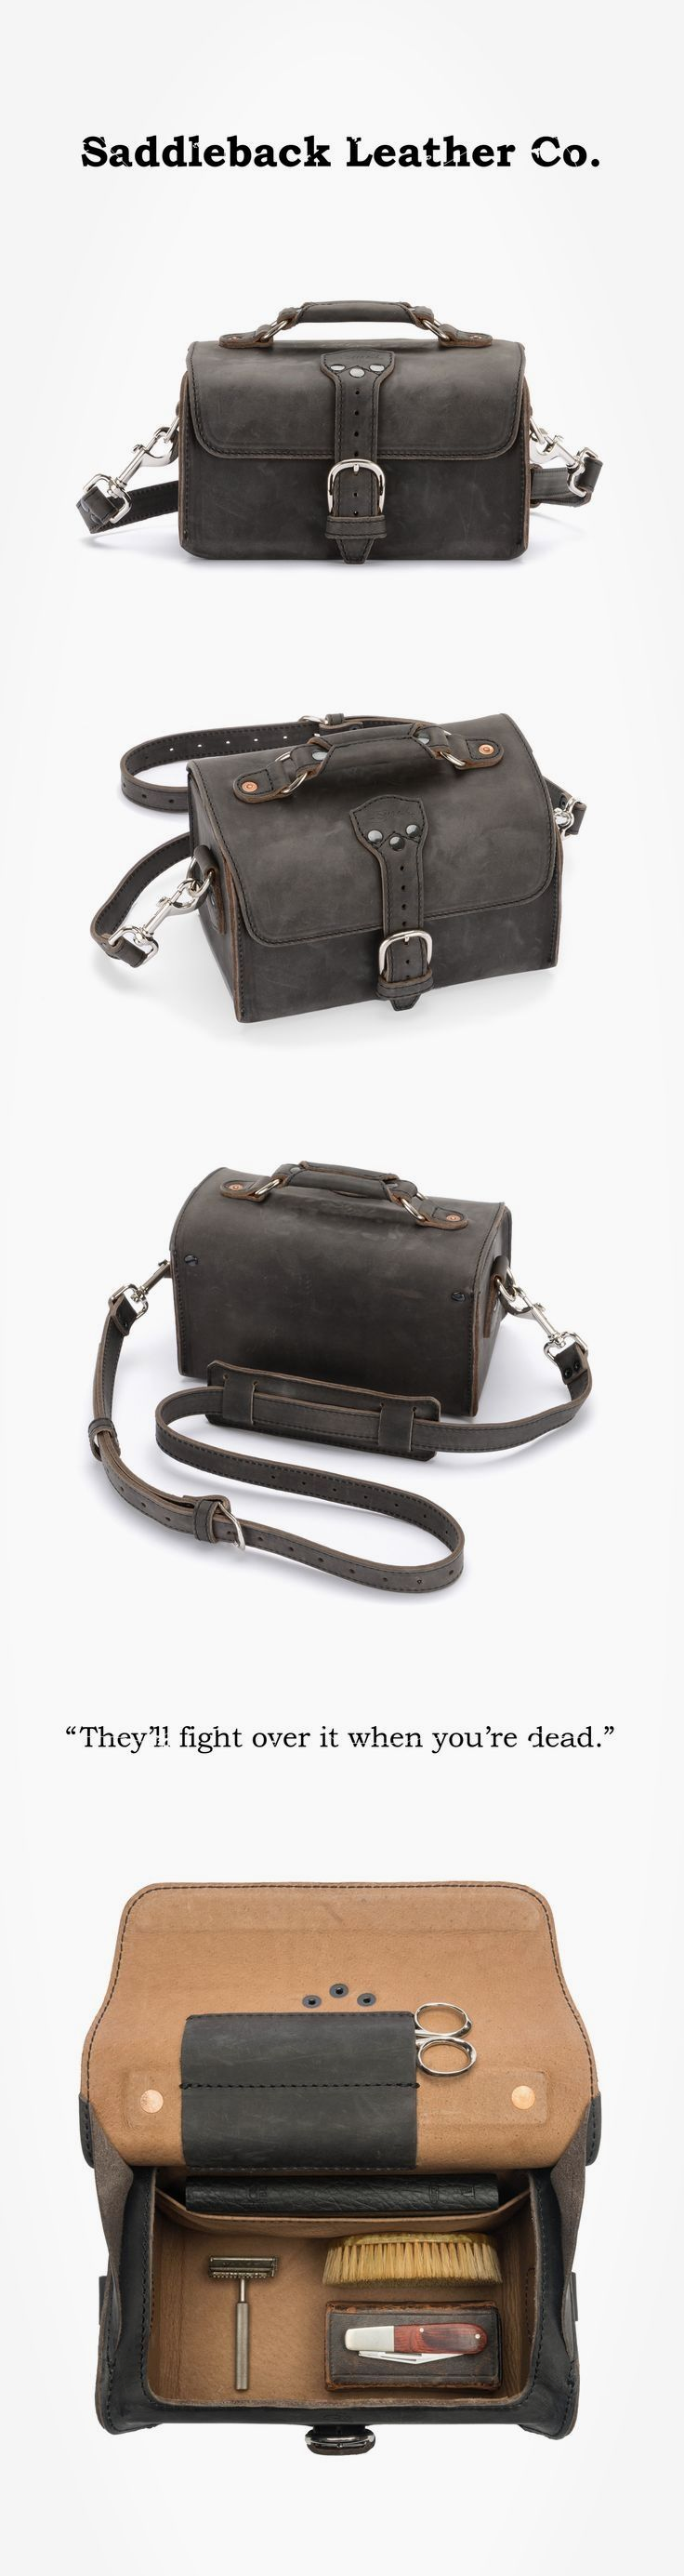 The Saddleback Leather Travel Case in Carbon | 100 Year Warranty | $181.00